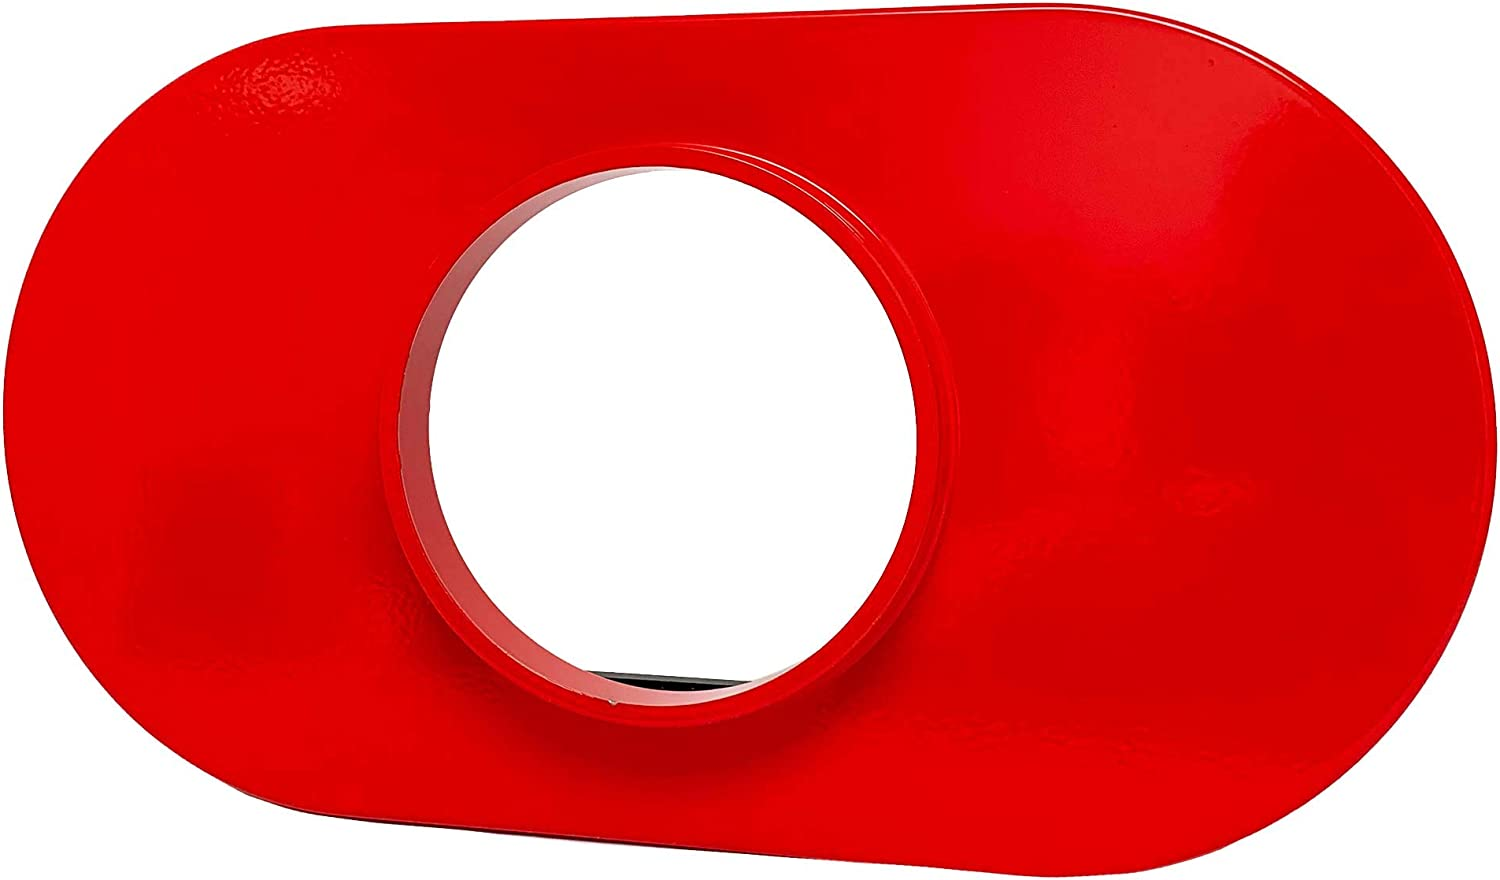 Red SBC Tall 383 STROKER Small Block Chevy Air Cleaner Lid Kit